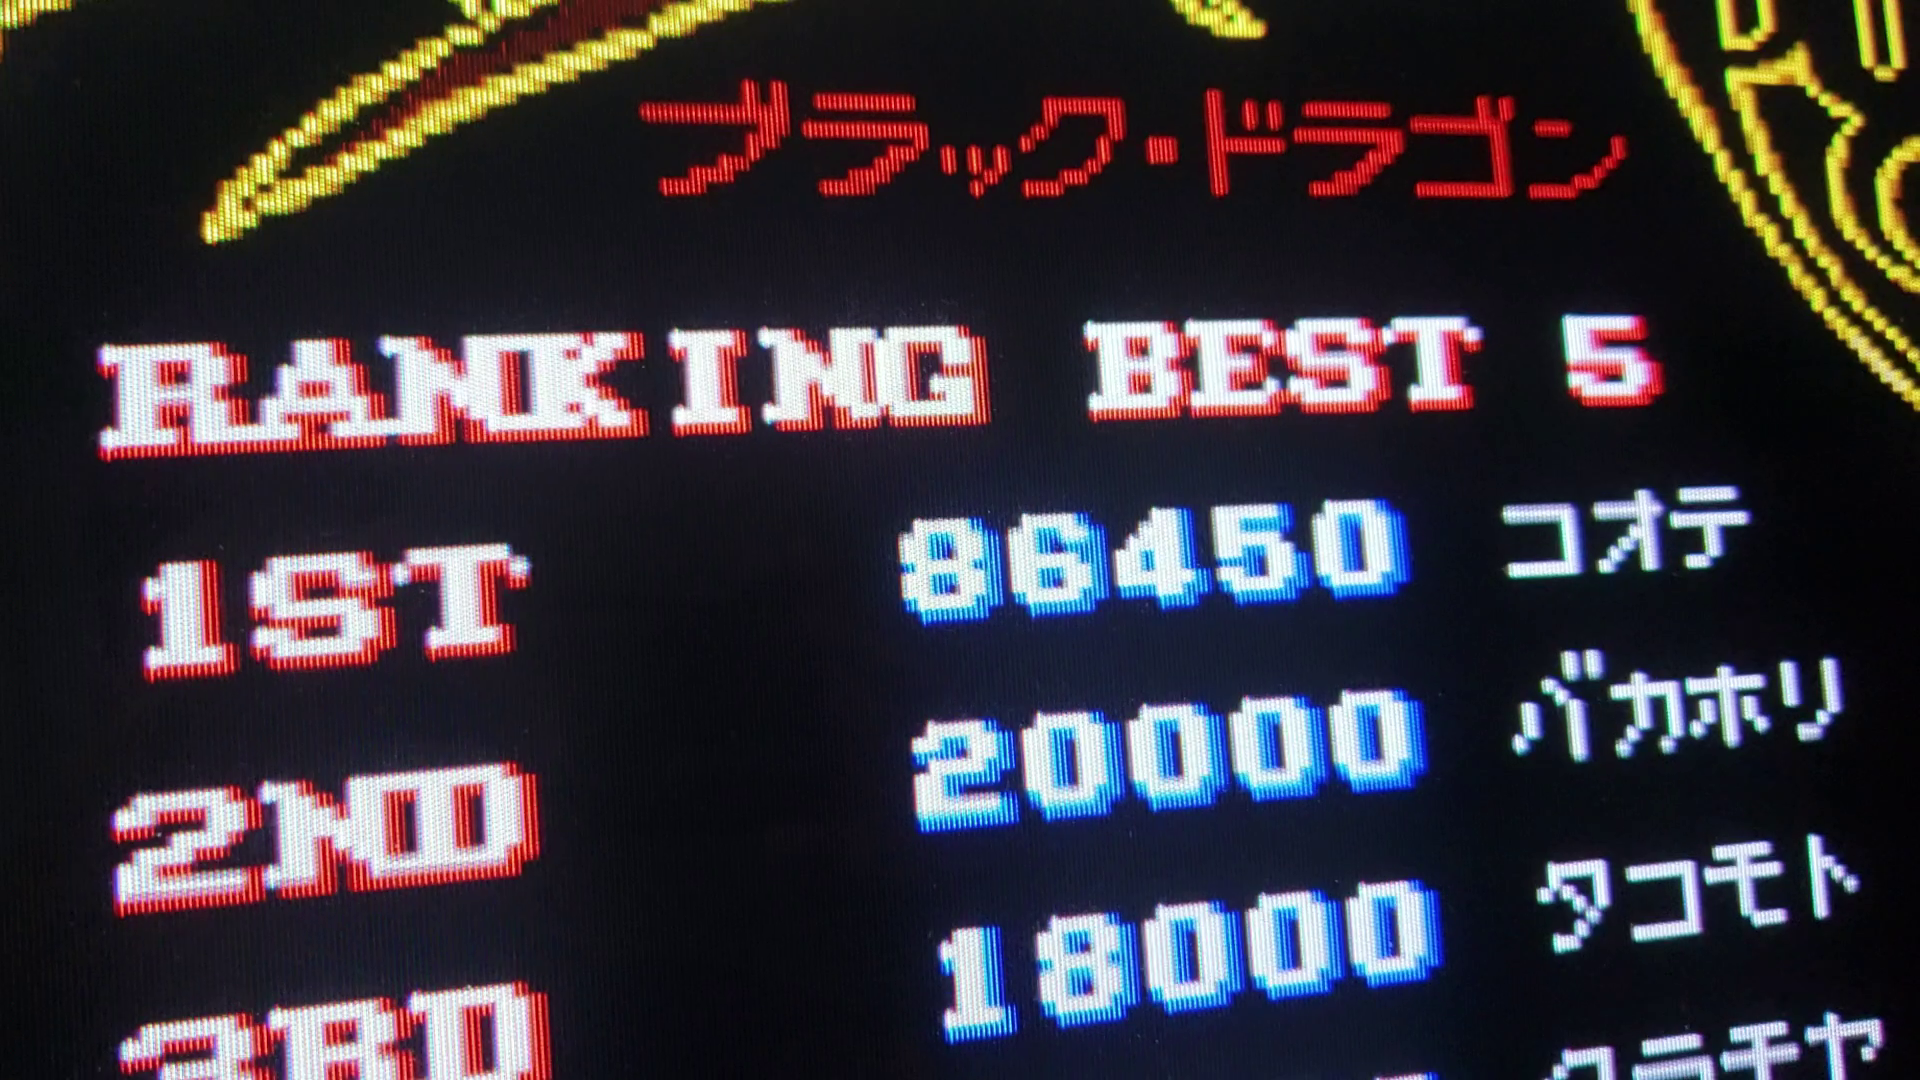 JES: Black Dragon [blkdrgon] (Arcade Emulated / M.A.M.E.) 86,450 points on 2020-01-11 18:19:13